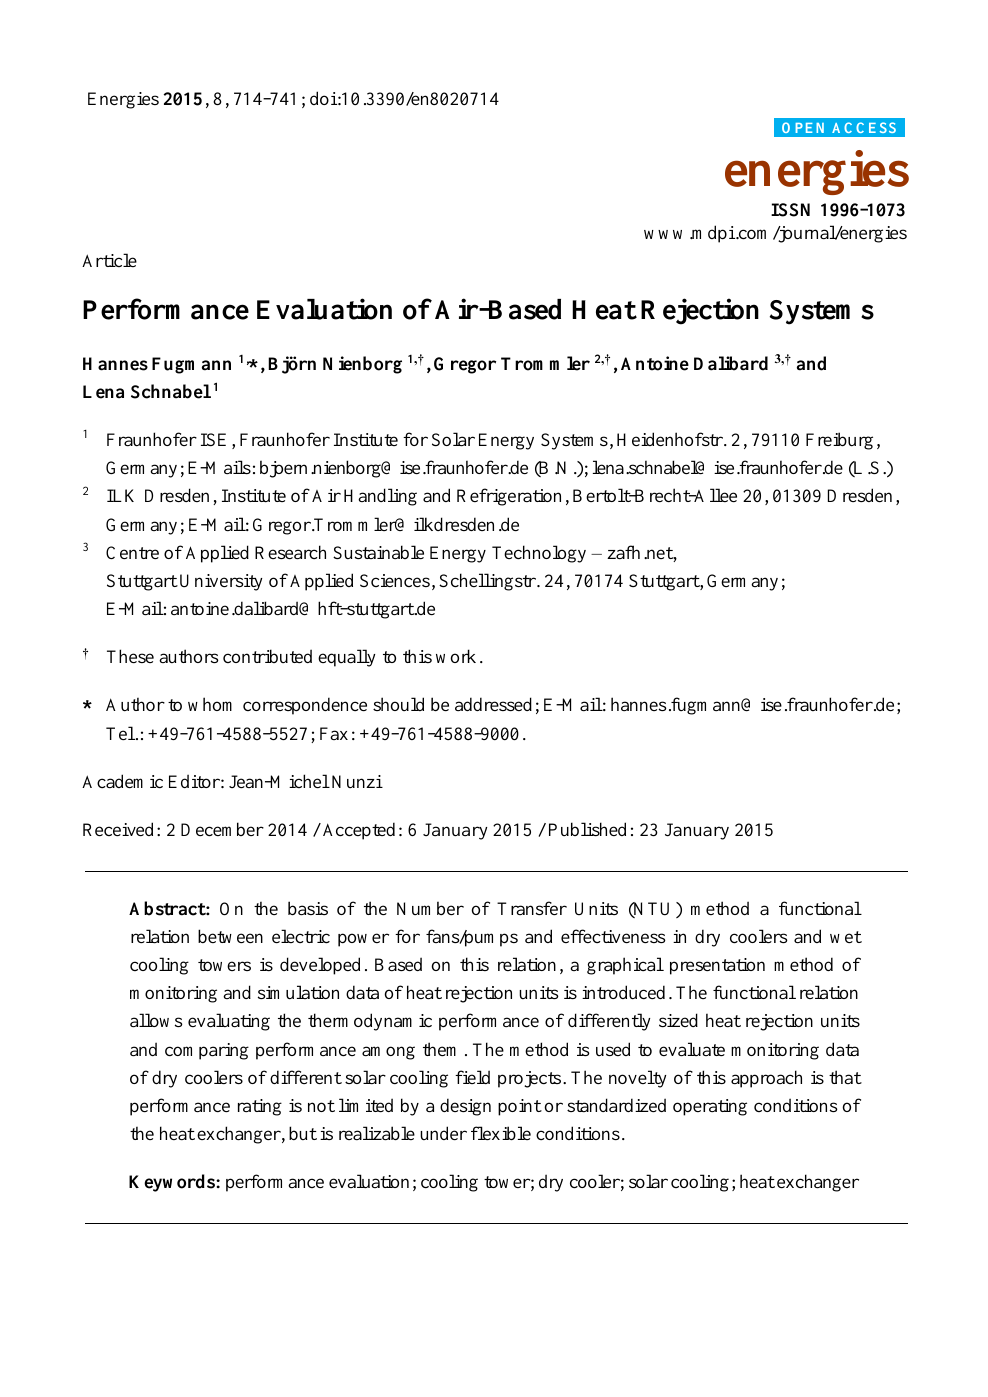 Performance Evaluation of Air-Based Heat Rejection Systems – topic